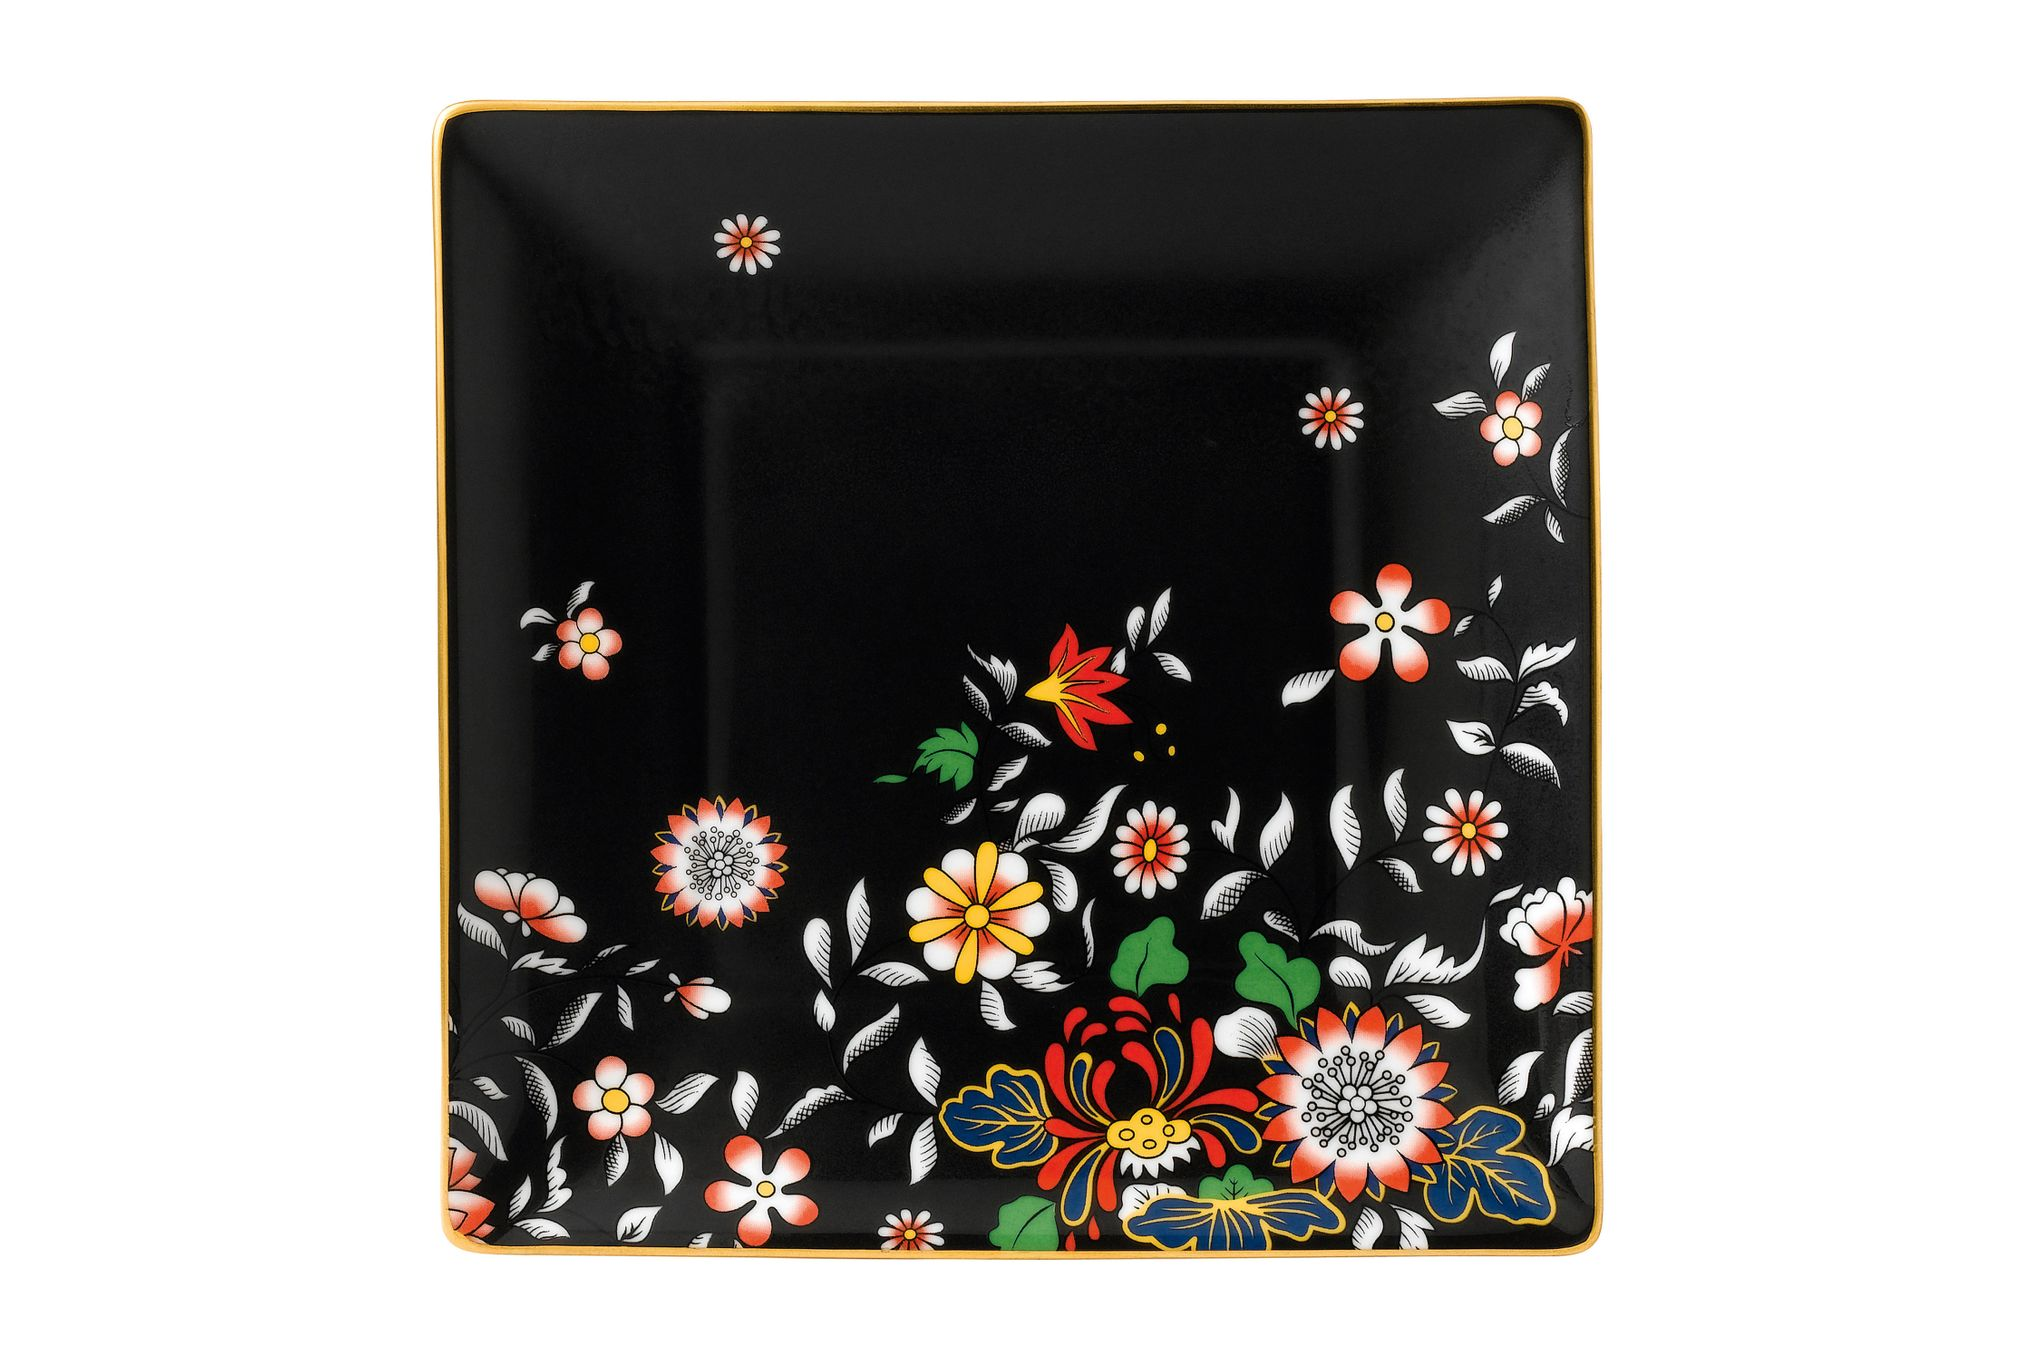 Wedgwood Wonderlust Tray (Giftware) Oriental Jewel - Boxed 14.5cm thumb 1